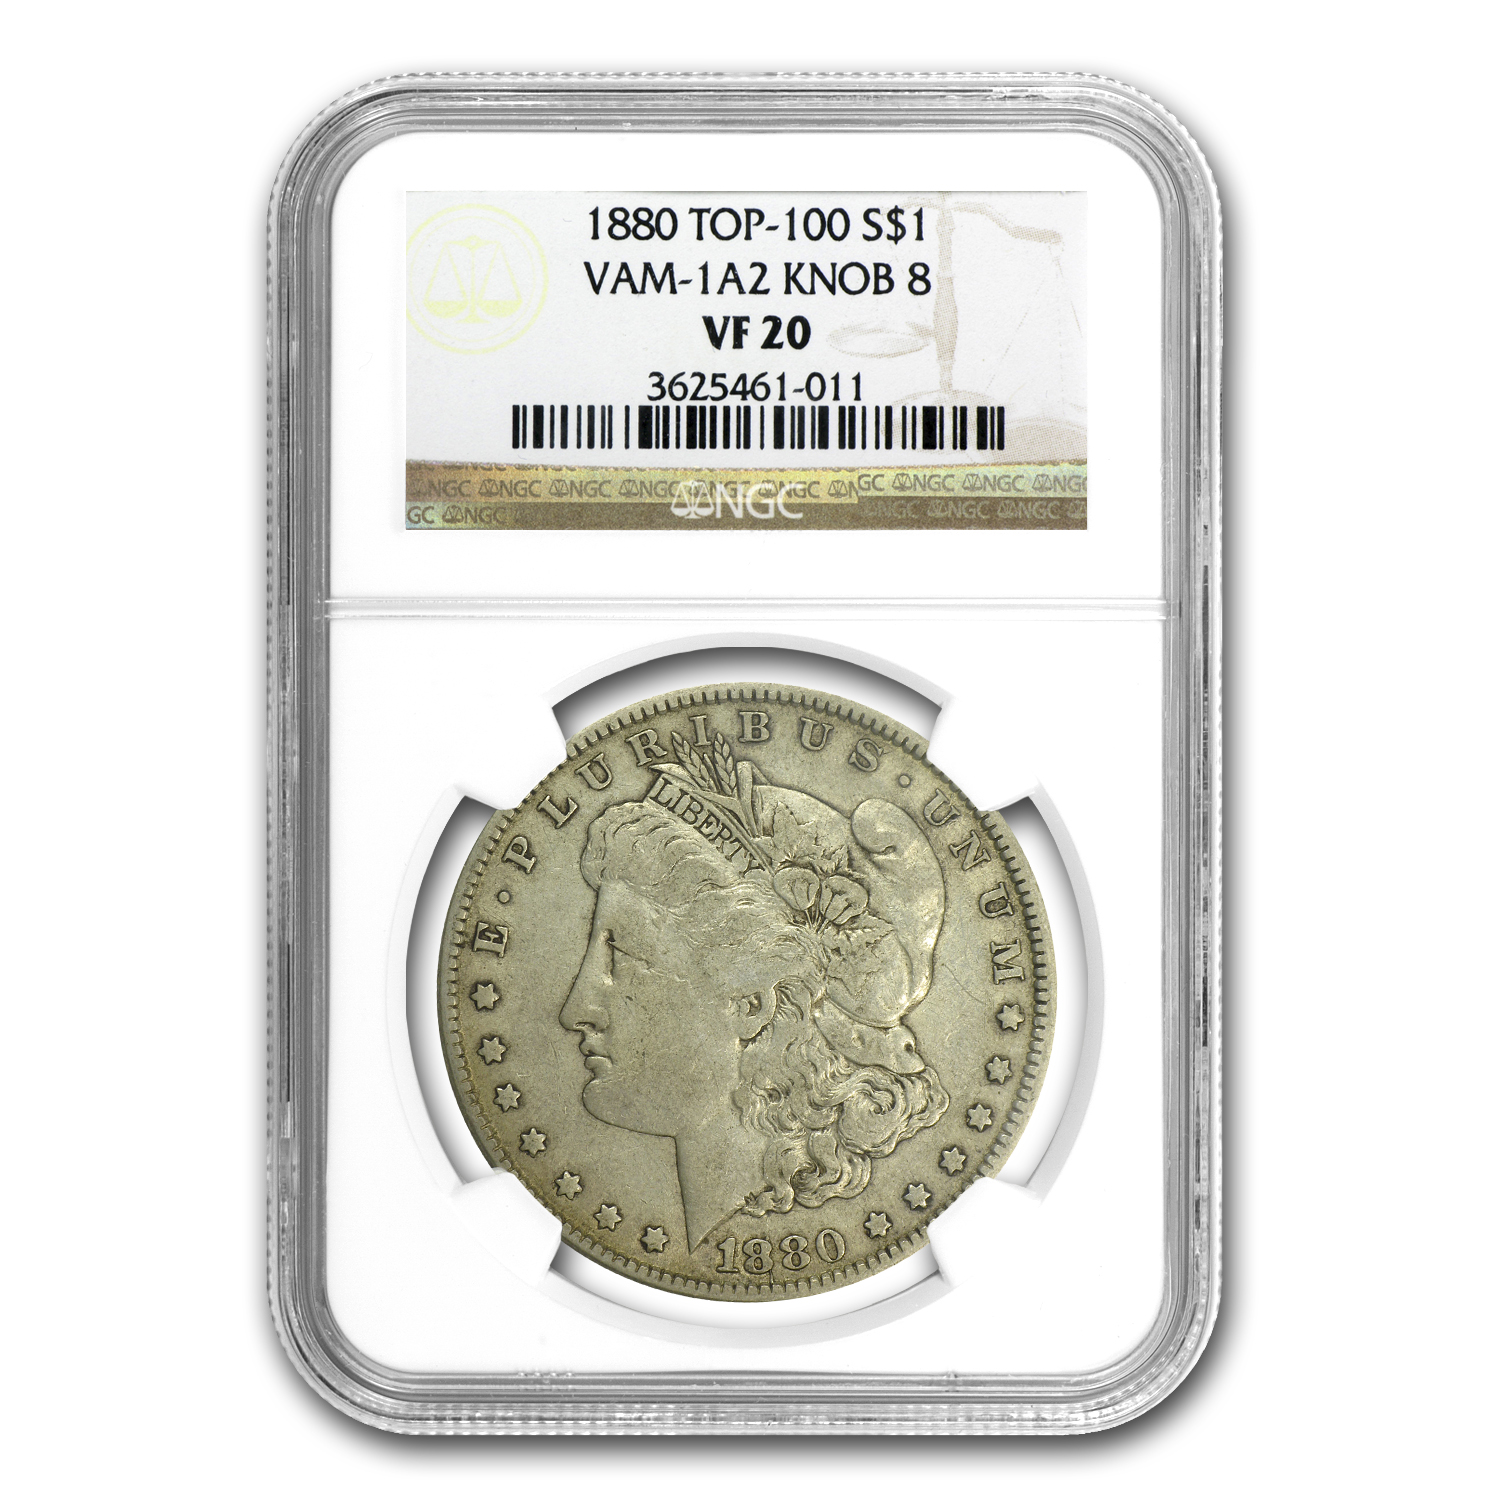 1880 Morgan Dollar - VF-20 NGC VAM-1A2 Knobbed 8 Top-100